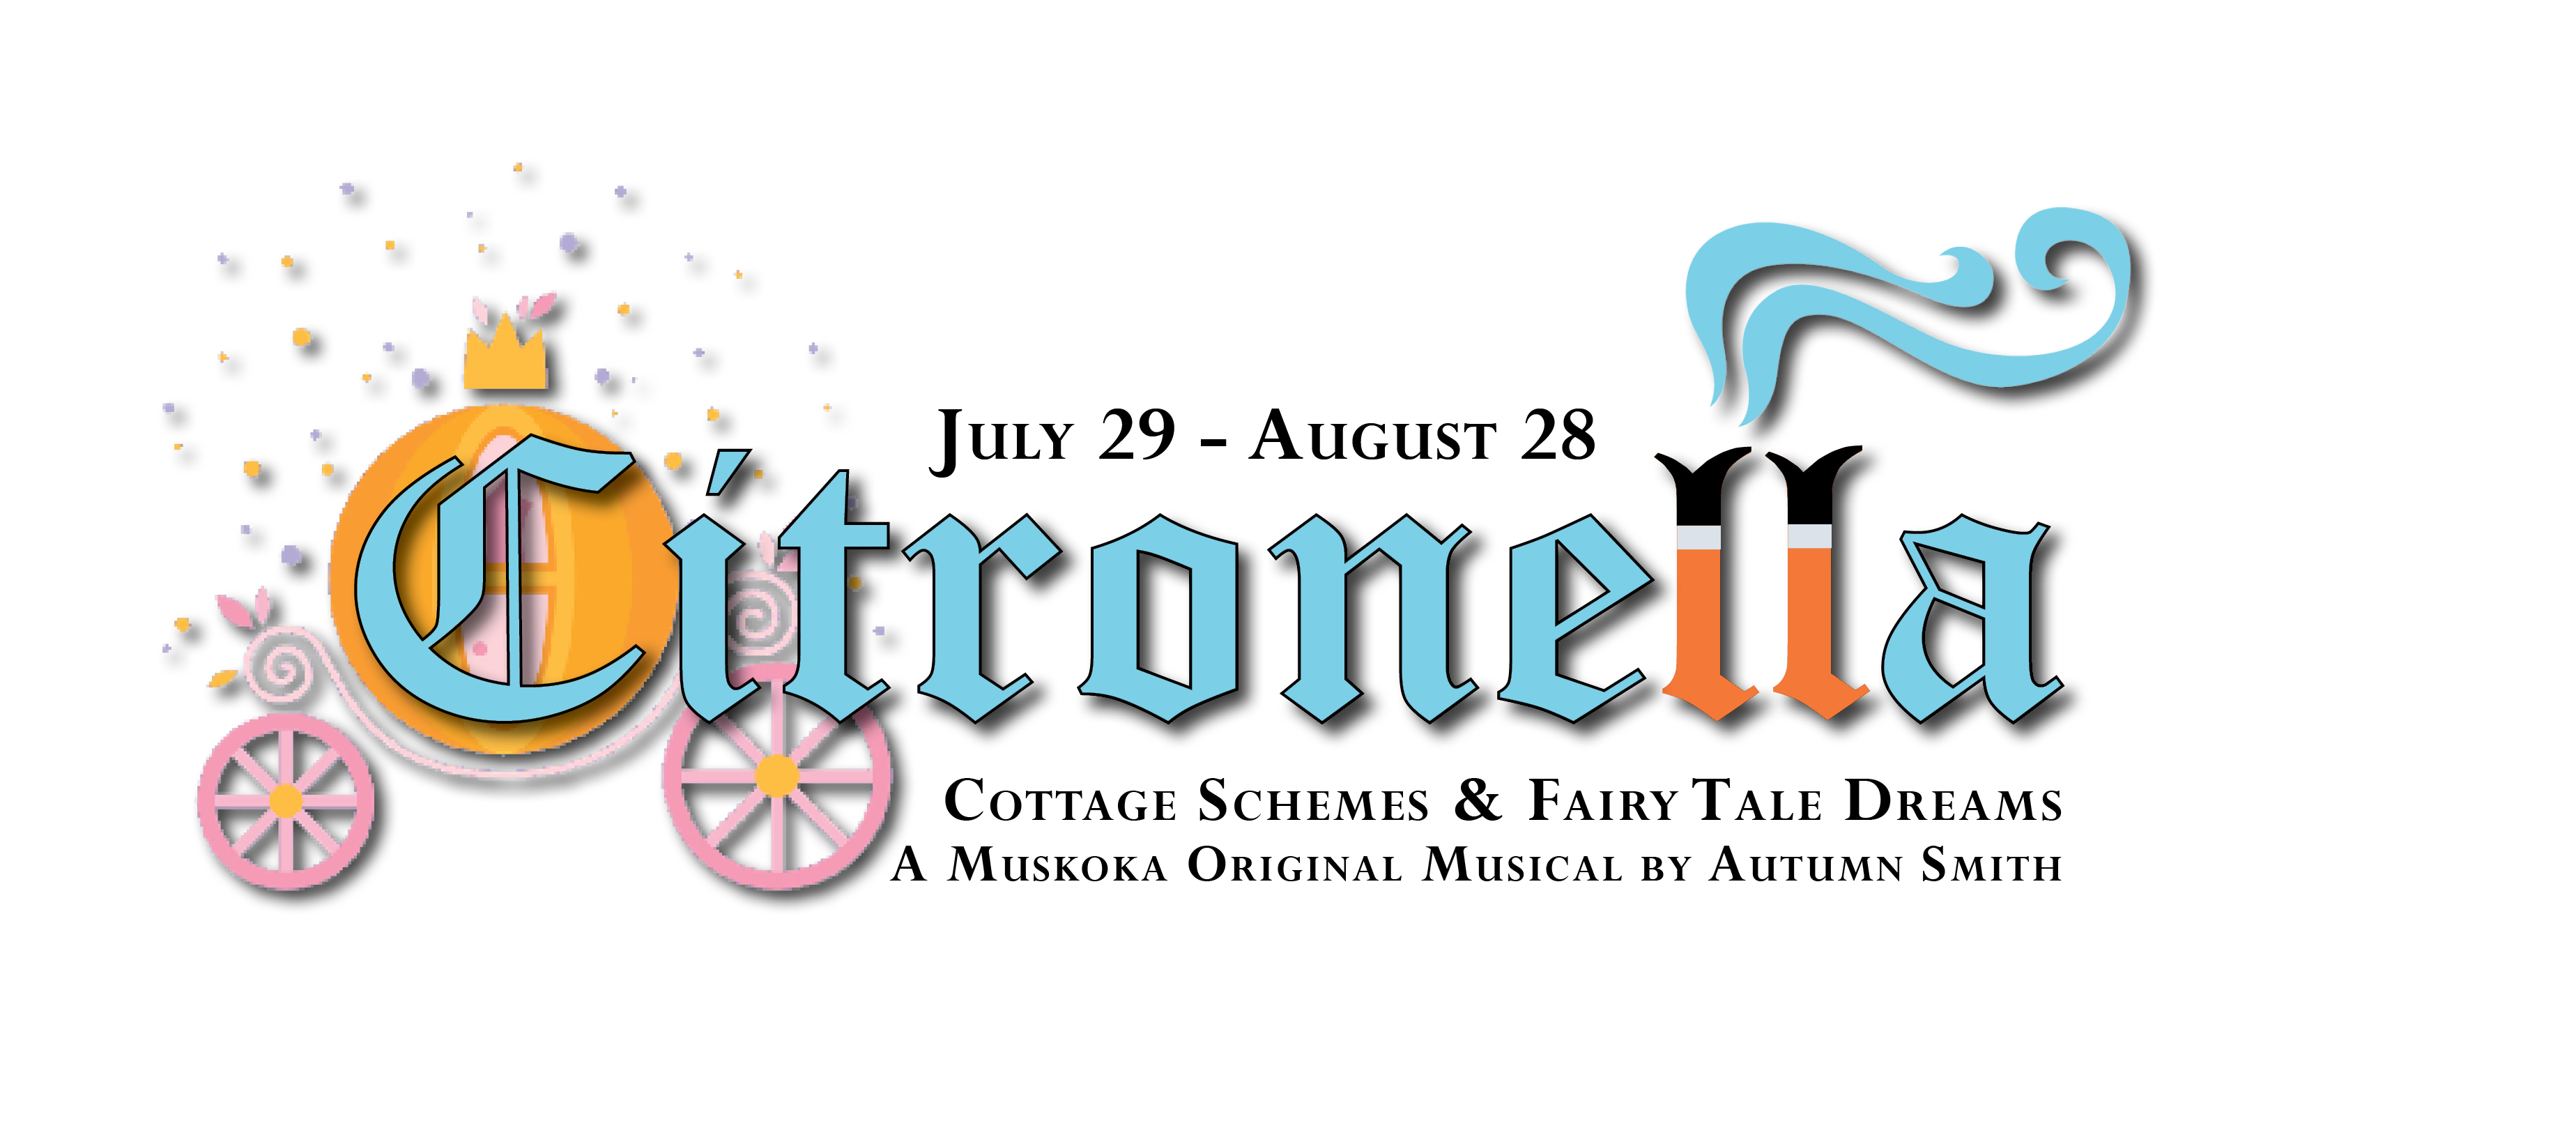 Promotional image fort he upcoming Citronella The Musical production